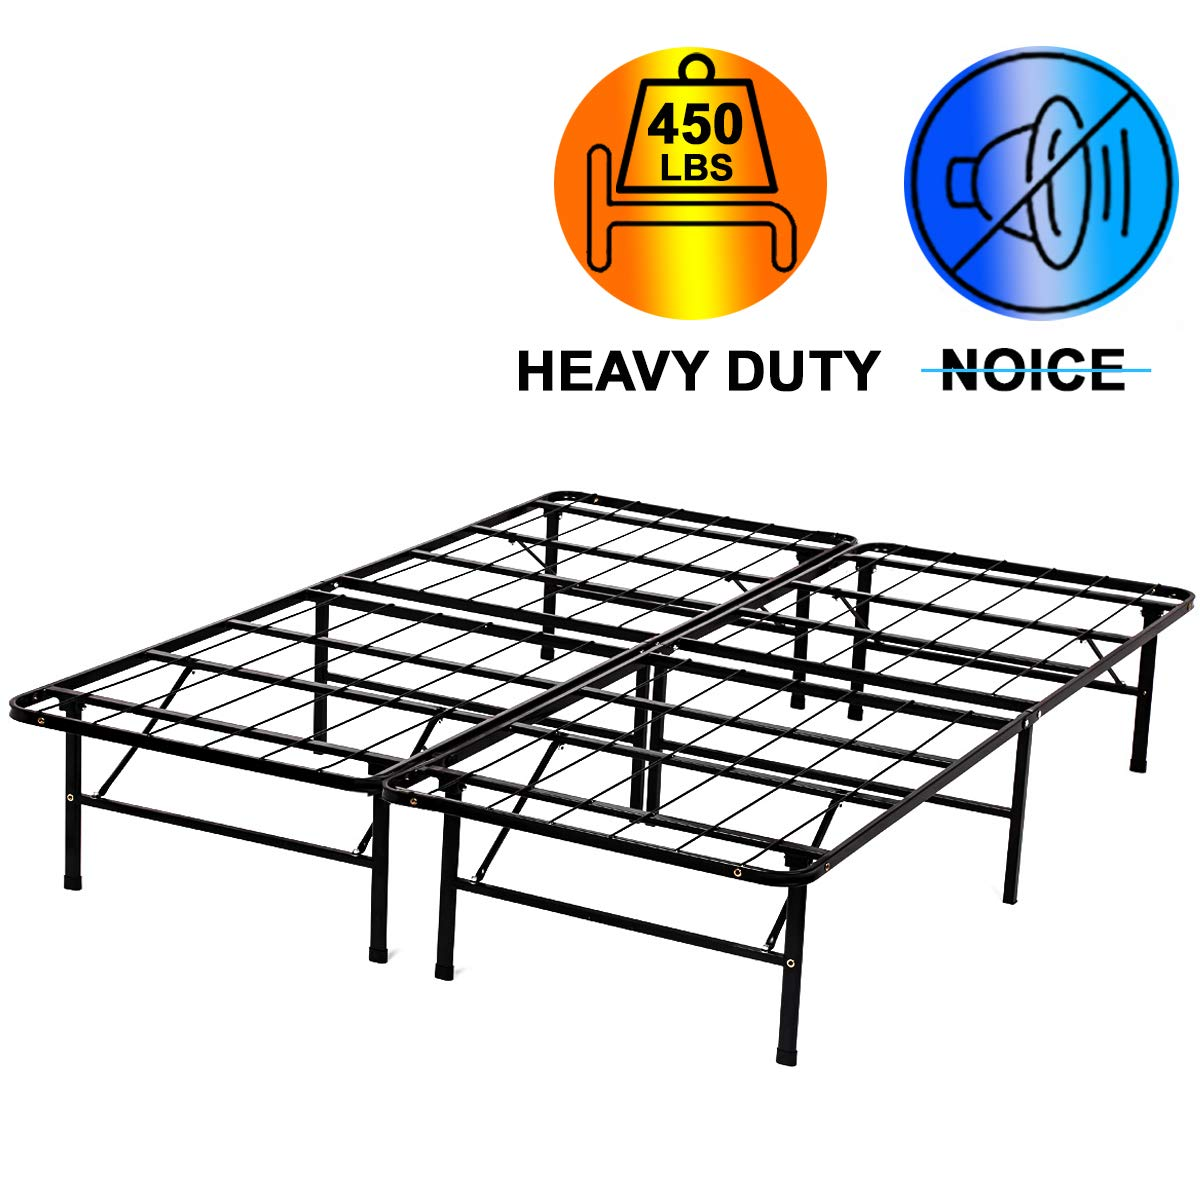 Queen Bed Frame Metal Platform Bed Frame Queen Size 14 Inch Mattress Foundation Box Spring Replacement Heavy Duty Steel Slat Noise-Free Easy Assembly,Black by BestMassage